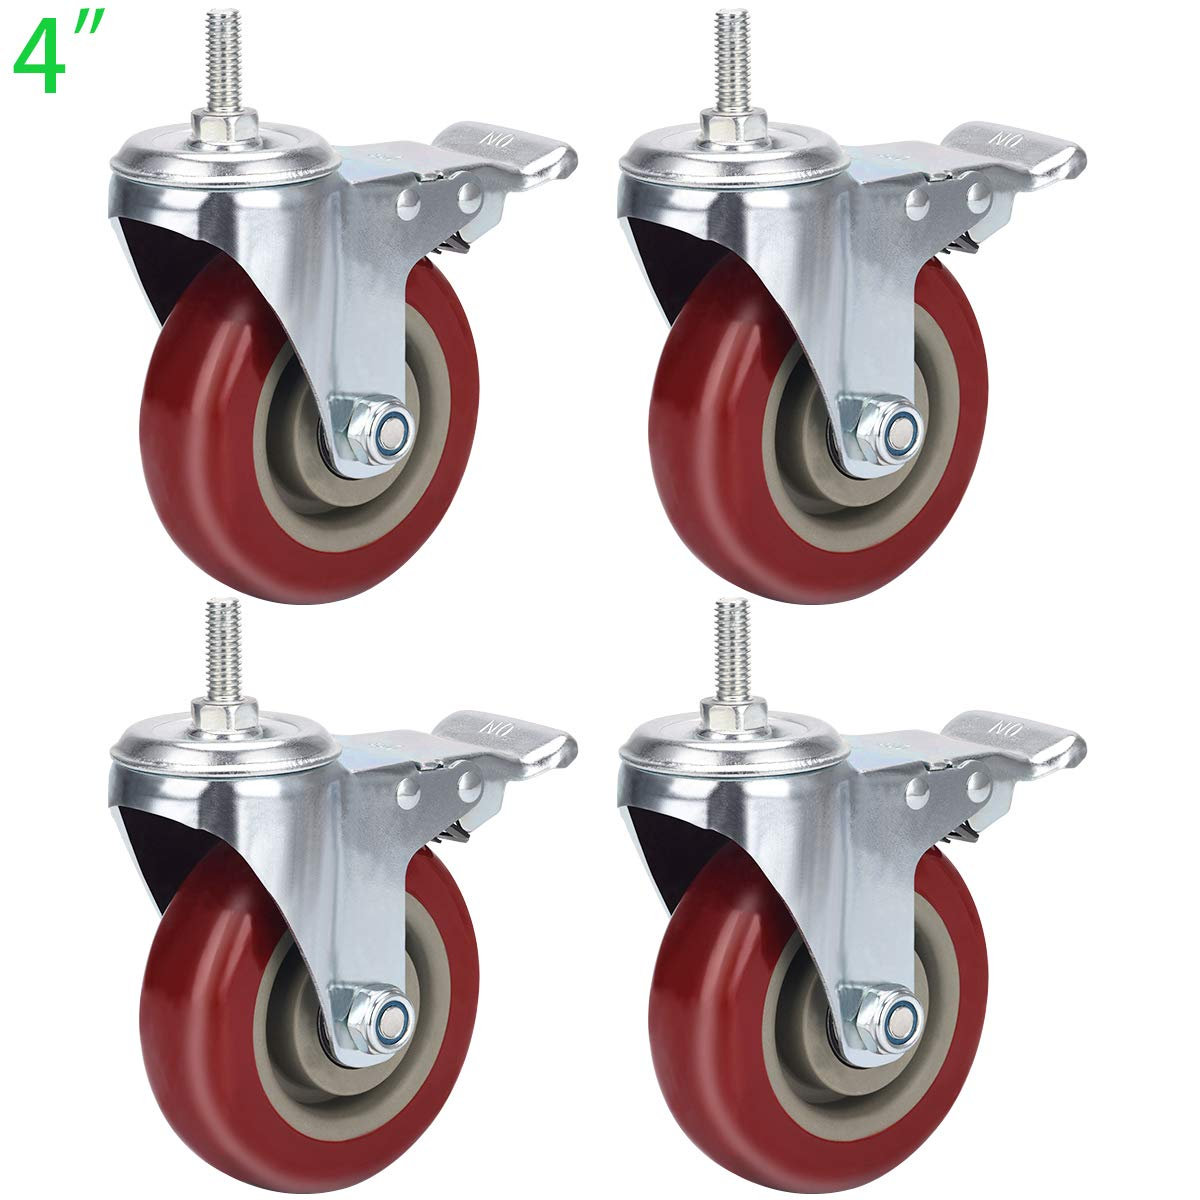 DICASAL Heavy Duty Stem Casters 360 Degree Swivel Durable Wheels Castors with Imperial Size 3//8-16x1 Threads Dual Safety Locks and Bearings Easy to Install for Furniture and DIY Tools